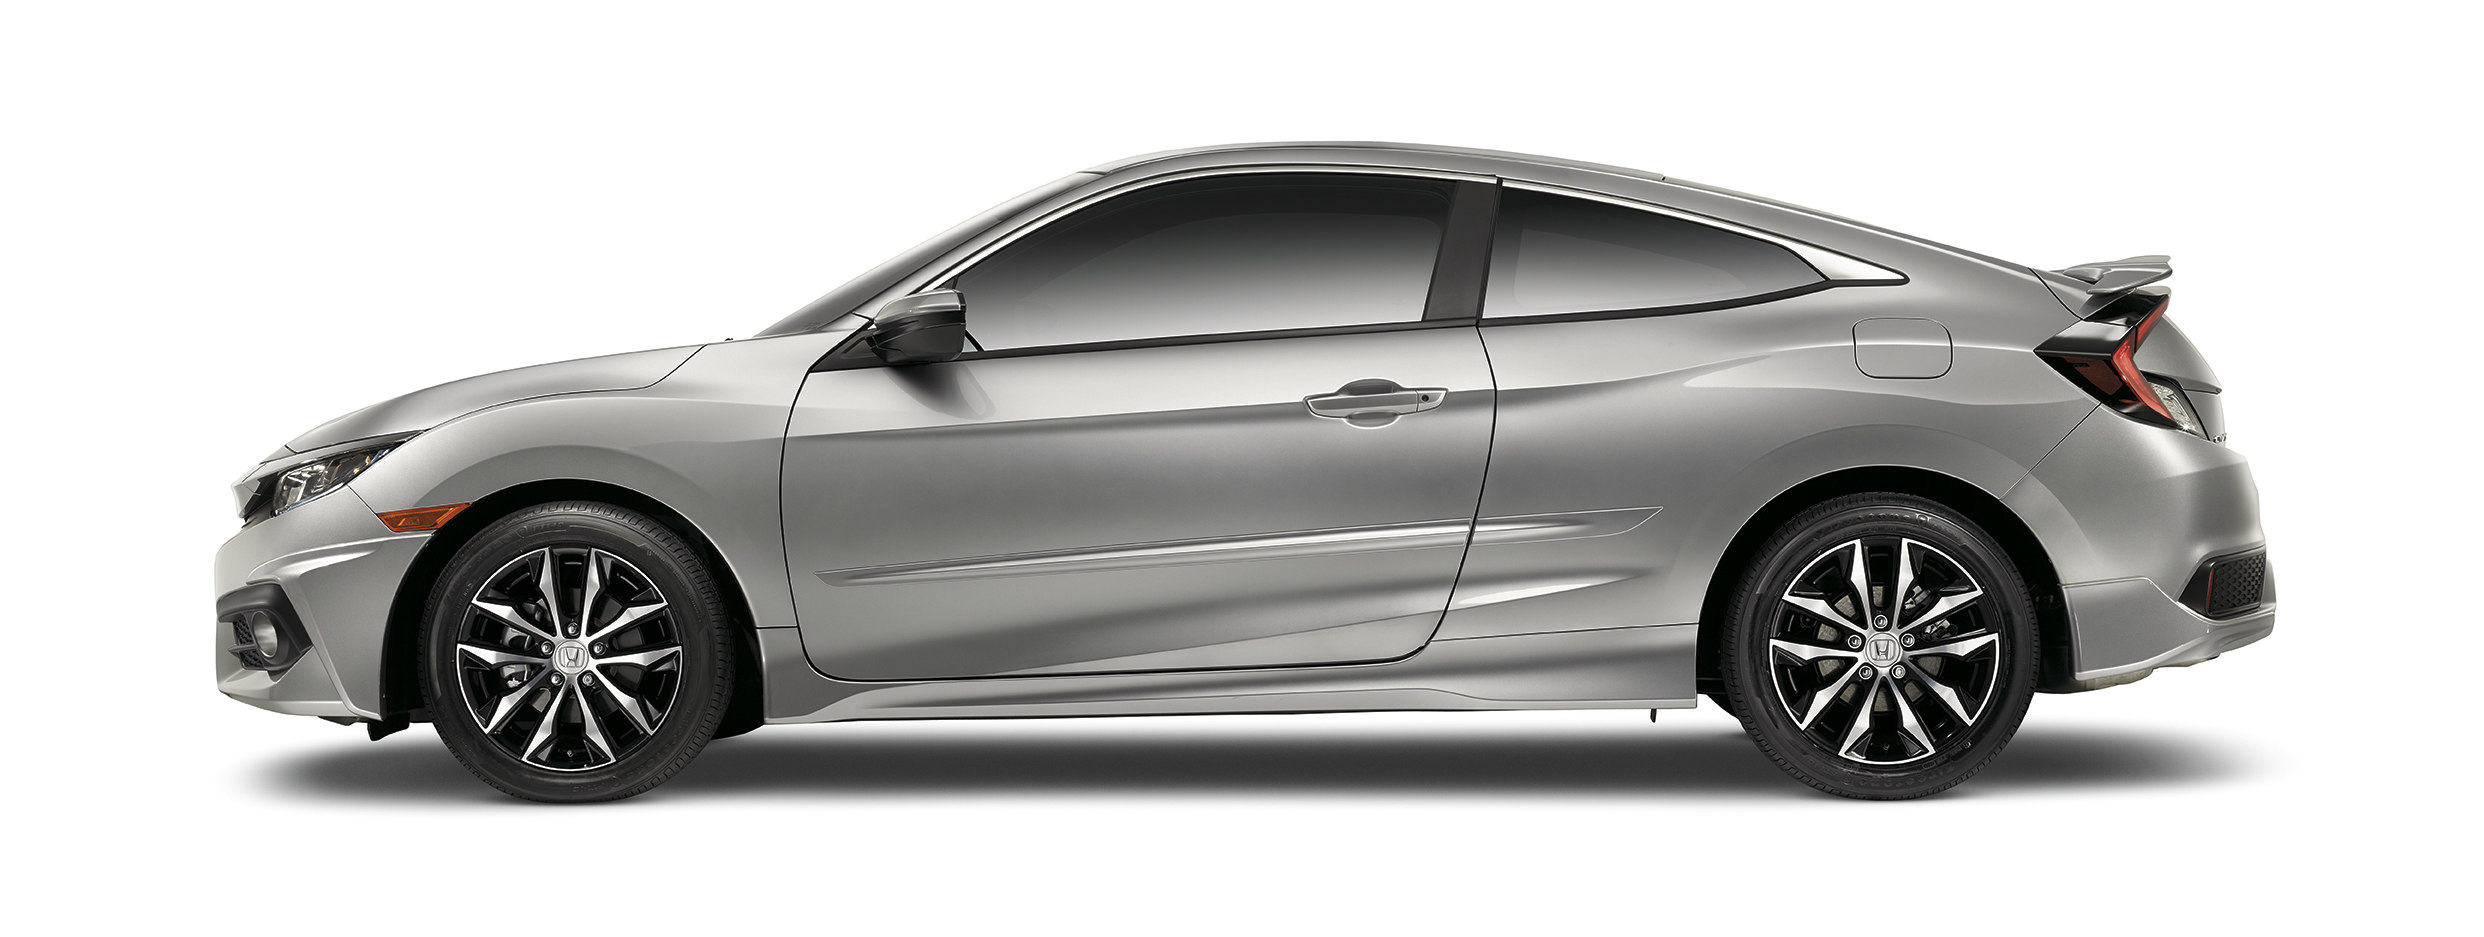 honda civic dr side underbody spoilers includes shipping  tbg